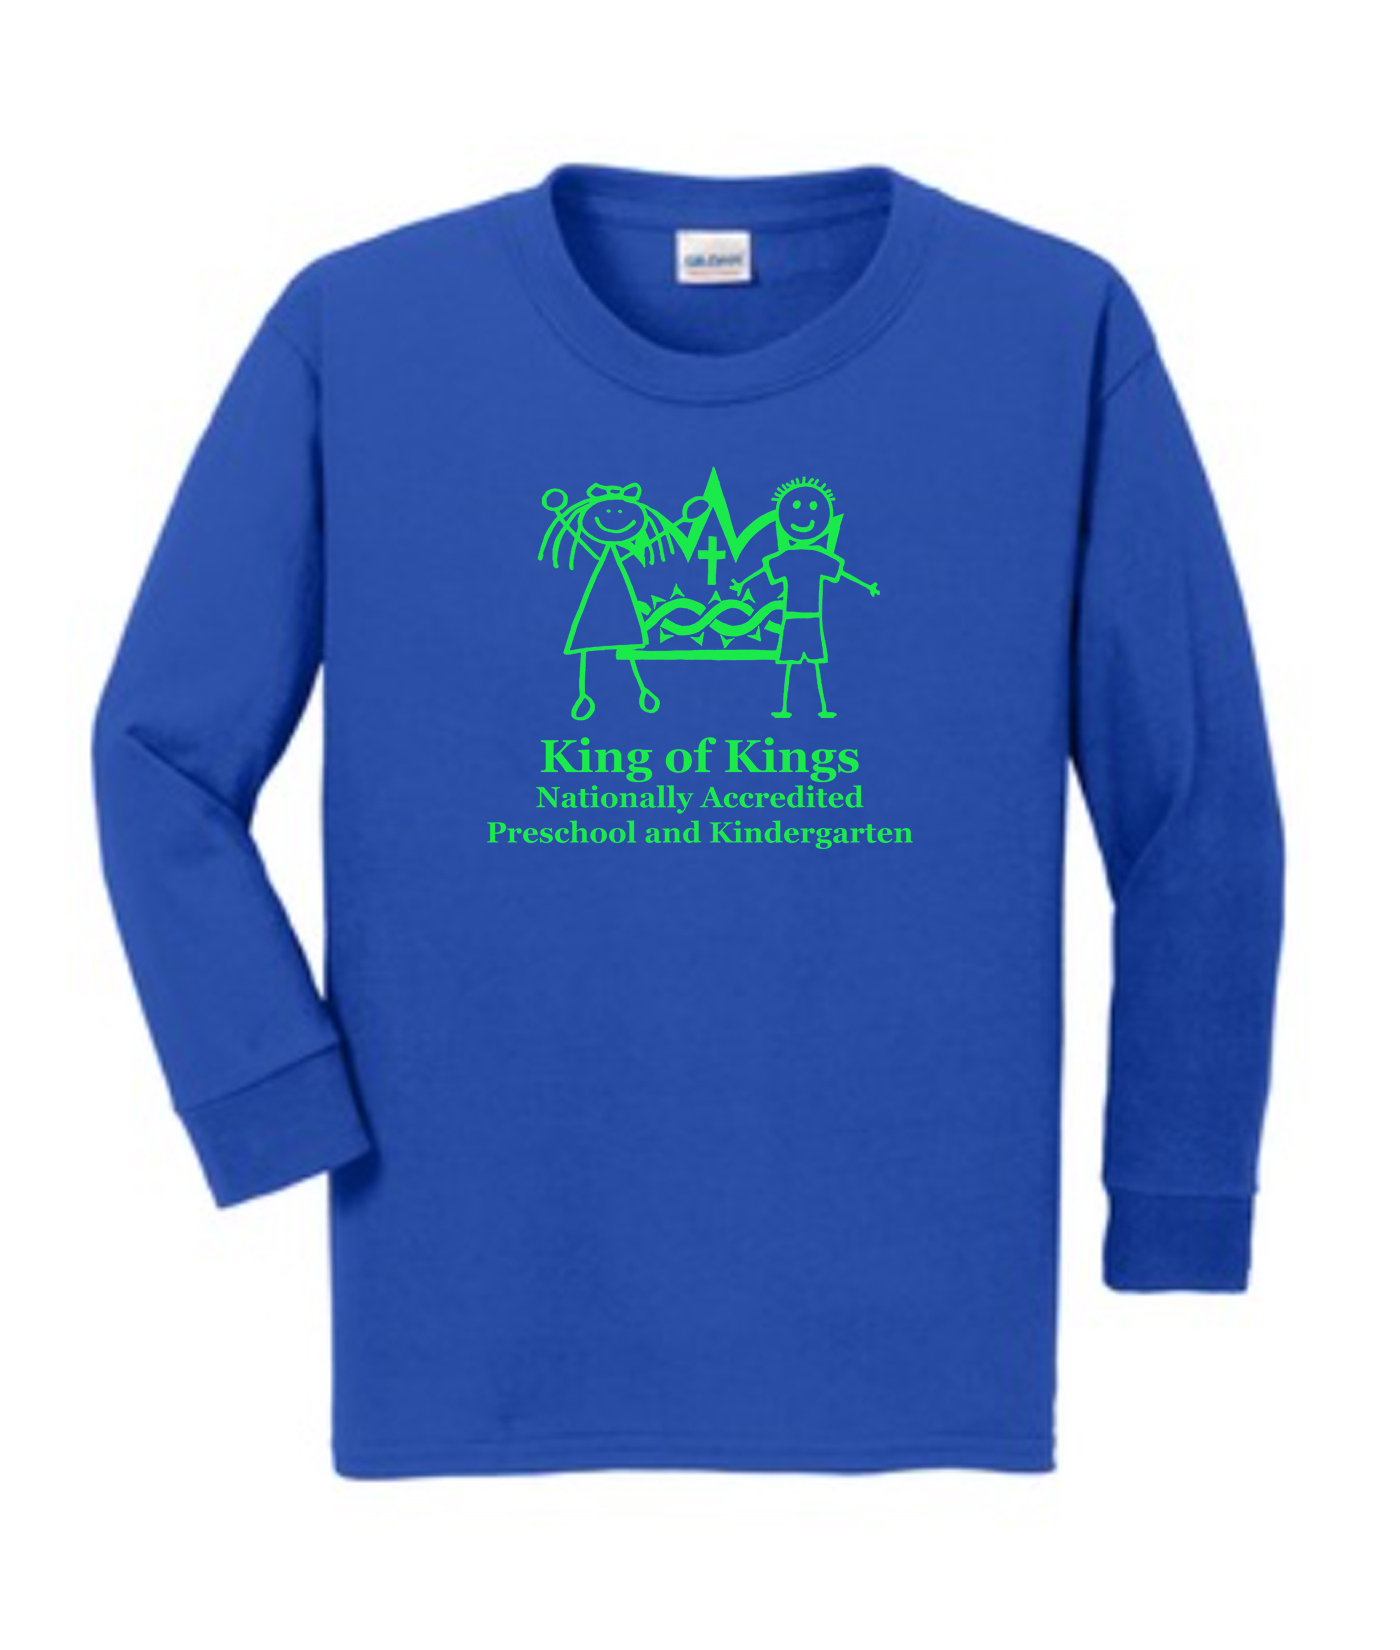 KOK Royal Long Sleeve Tshirt Green Logo